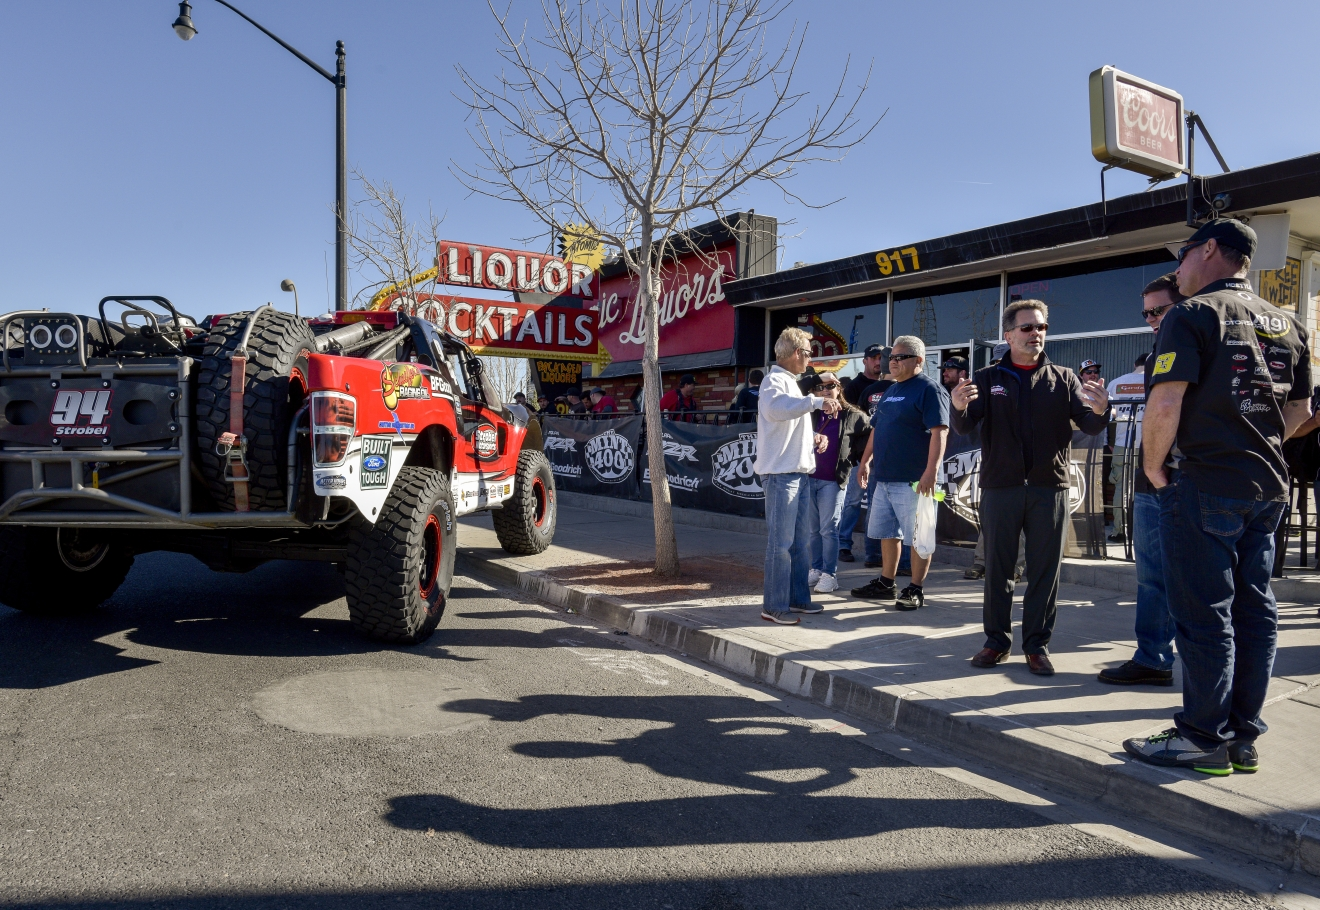 Drivers and crew gather for the opening party following the Mint 400 4 Wheel Parts Vehicle Procession powered by Odyssey Battery in downtown Las Vegas along Fremont Street East to kick off the Mint 400 off-road race weekend on Wednesday, Mar. 1, 2017. [Mark Damon/Las Vegas News Bureau]